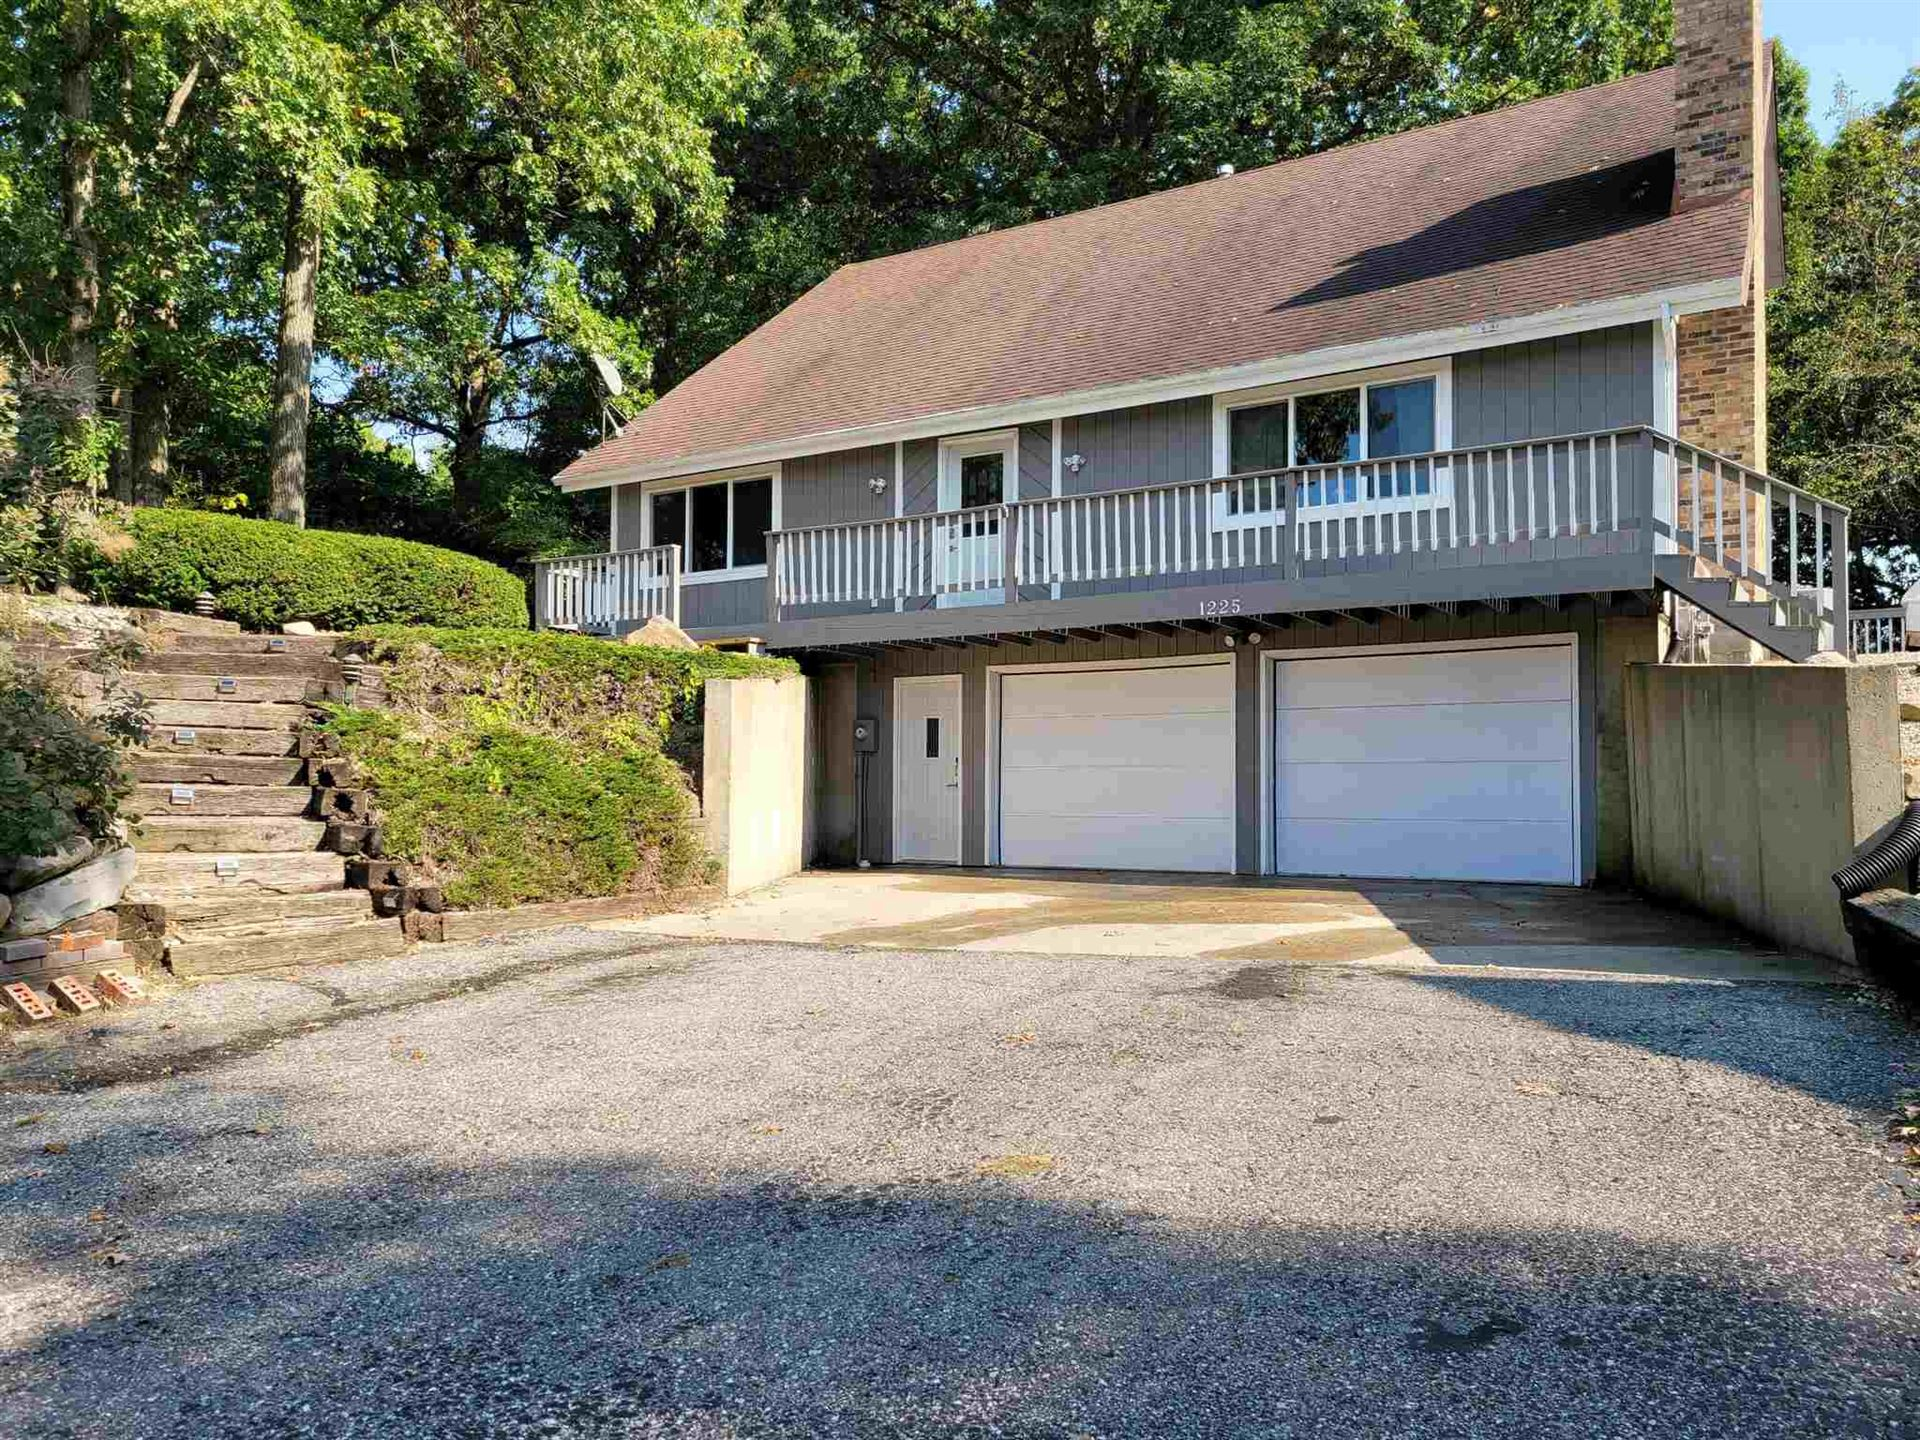 1225 W Country Club Drive, Angola, IN 46703 - #: 202039255